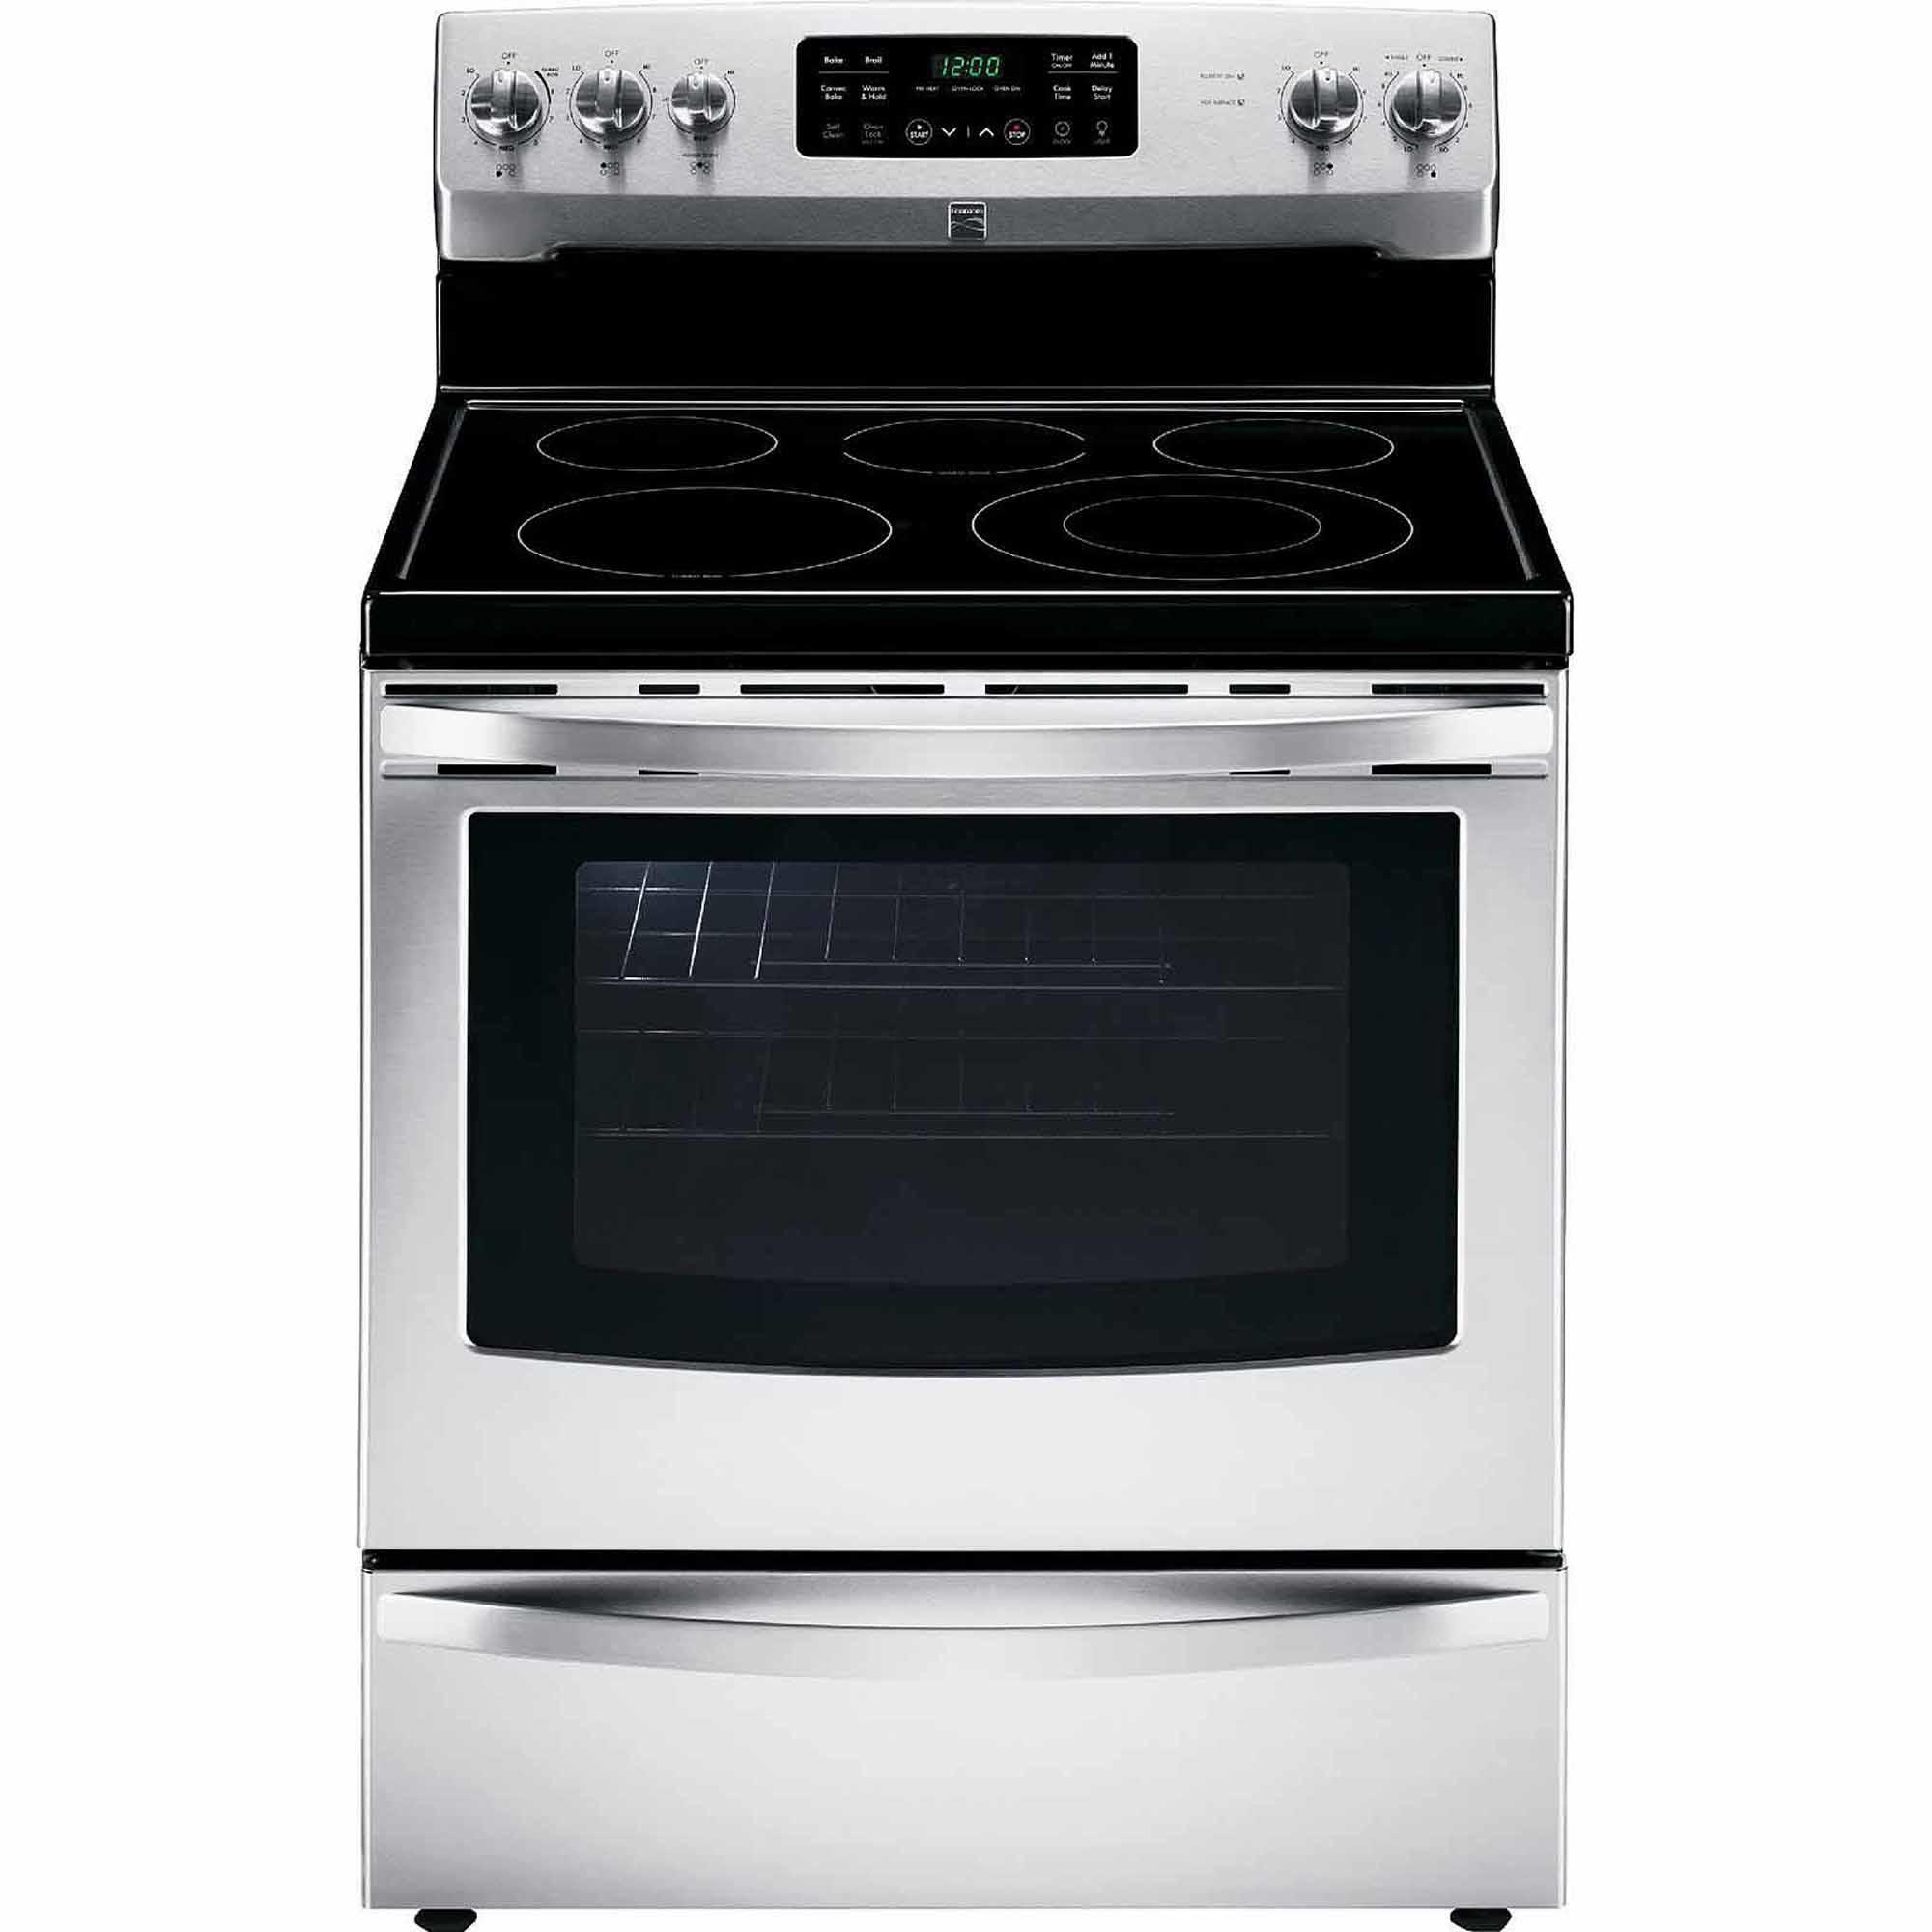 94193-5-4-cu-ft-Electric-Range-w-Convection-Oven-Stainless-Steel